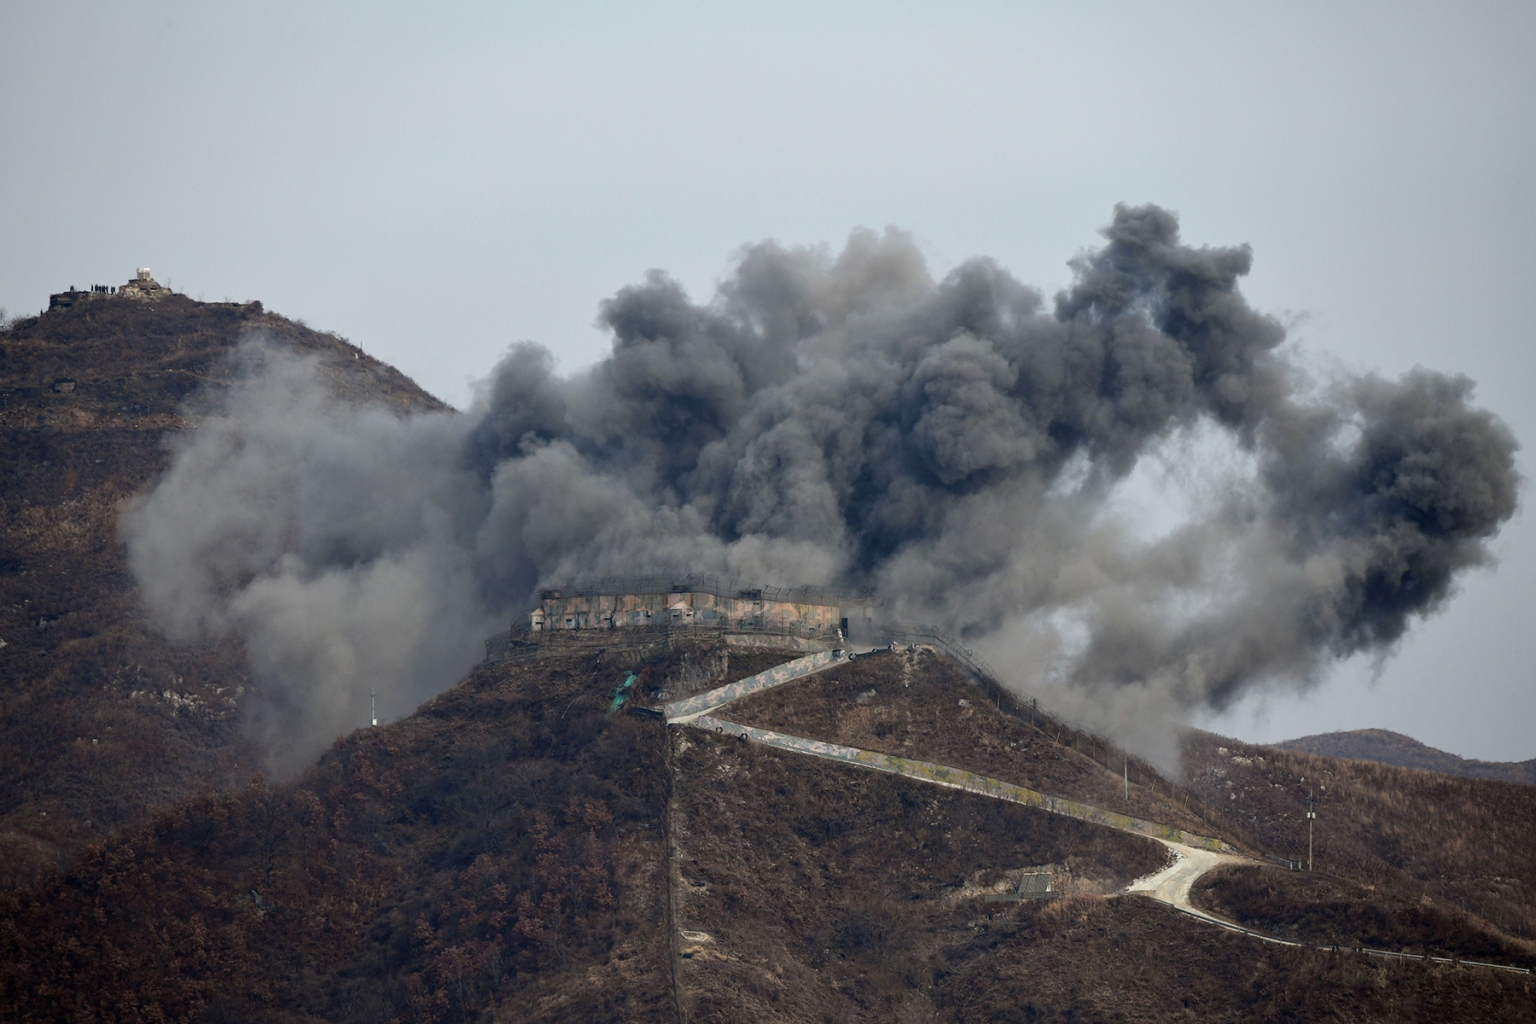 A South Korean guard post explodes as it is dismantled in the Demilitarized Zone dividing the two Koreas in Cheorwon on Nov. 15. The two Koreas began destroying 20 guard posts along their heavily fortified frontier on under a plan to reduce tensions on the border. JUNG YEON-JE/AFP/Getty Images